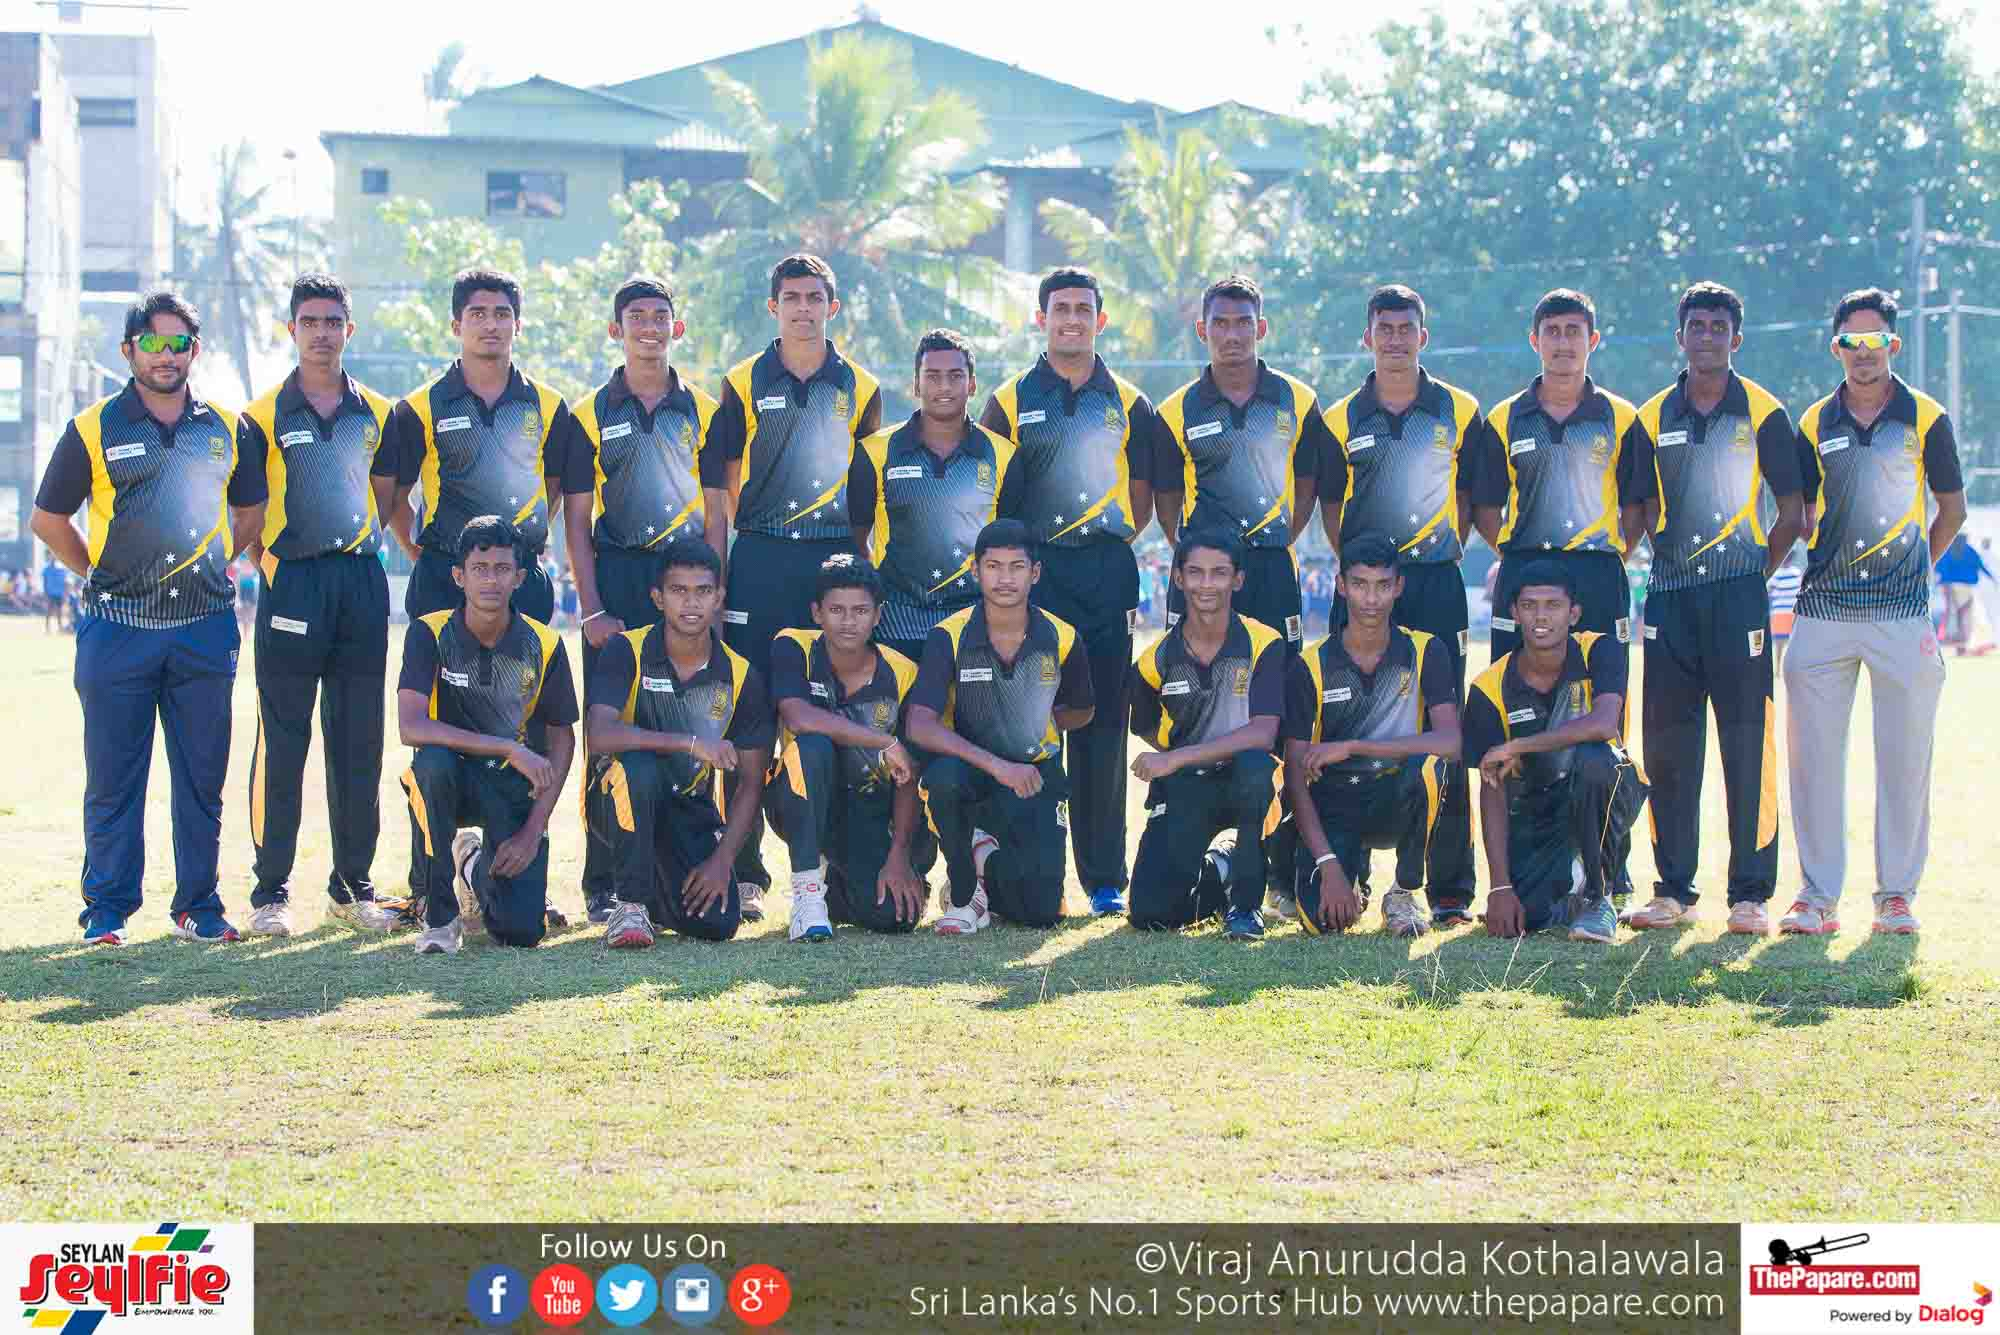 Mahanama College Cricket Team 2017